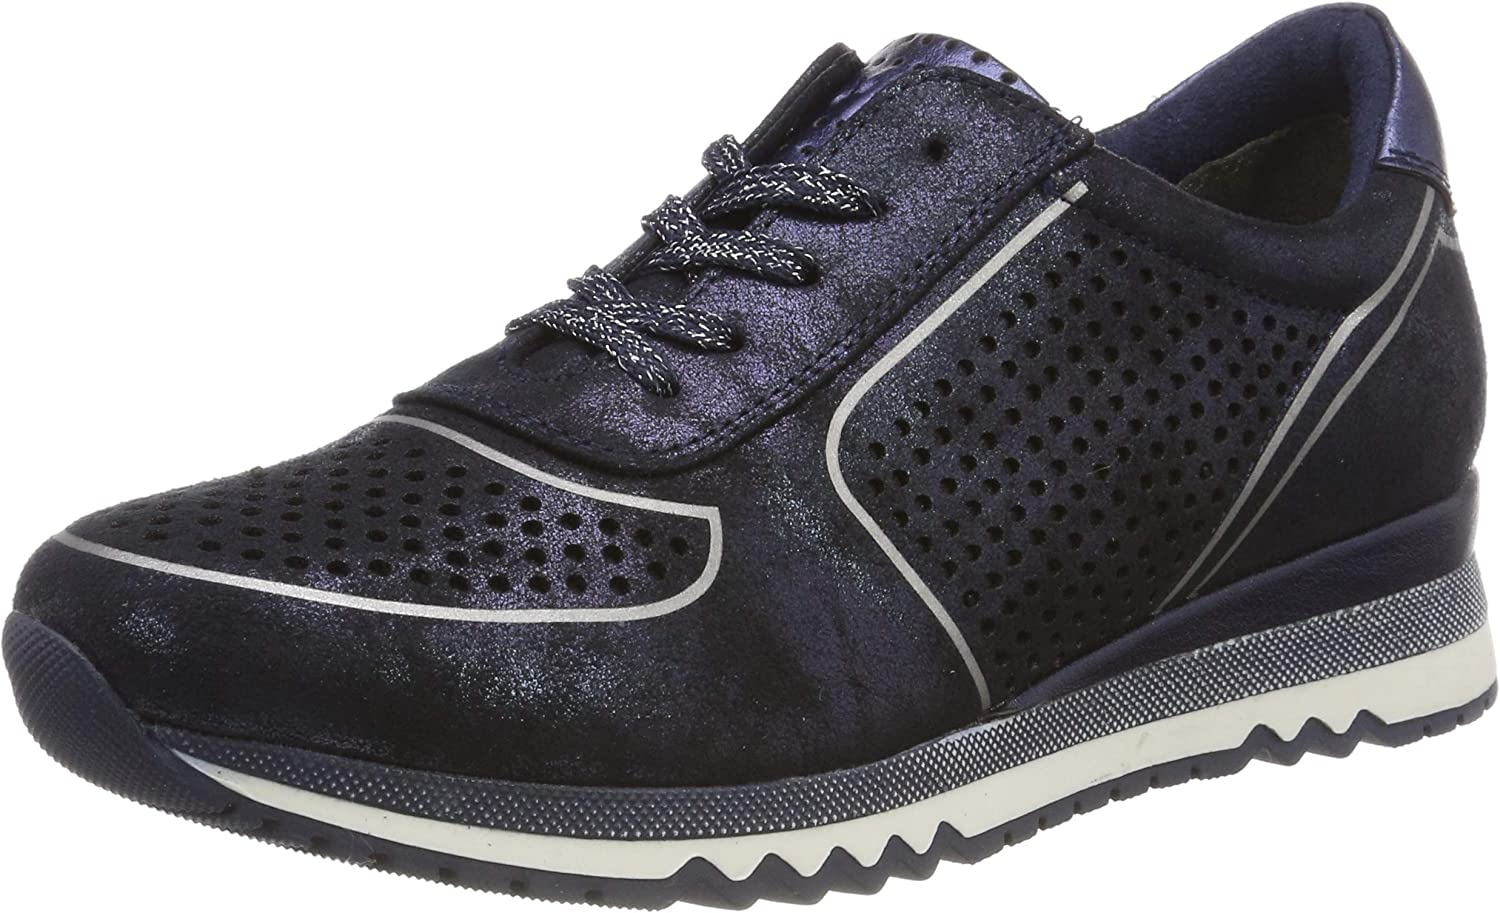 Marco Tozzi Women's 2-2-23772-22 Low-Top Sneakers